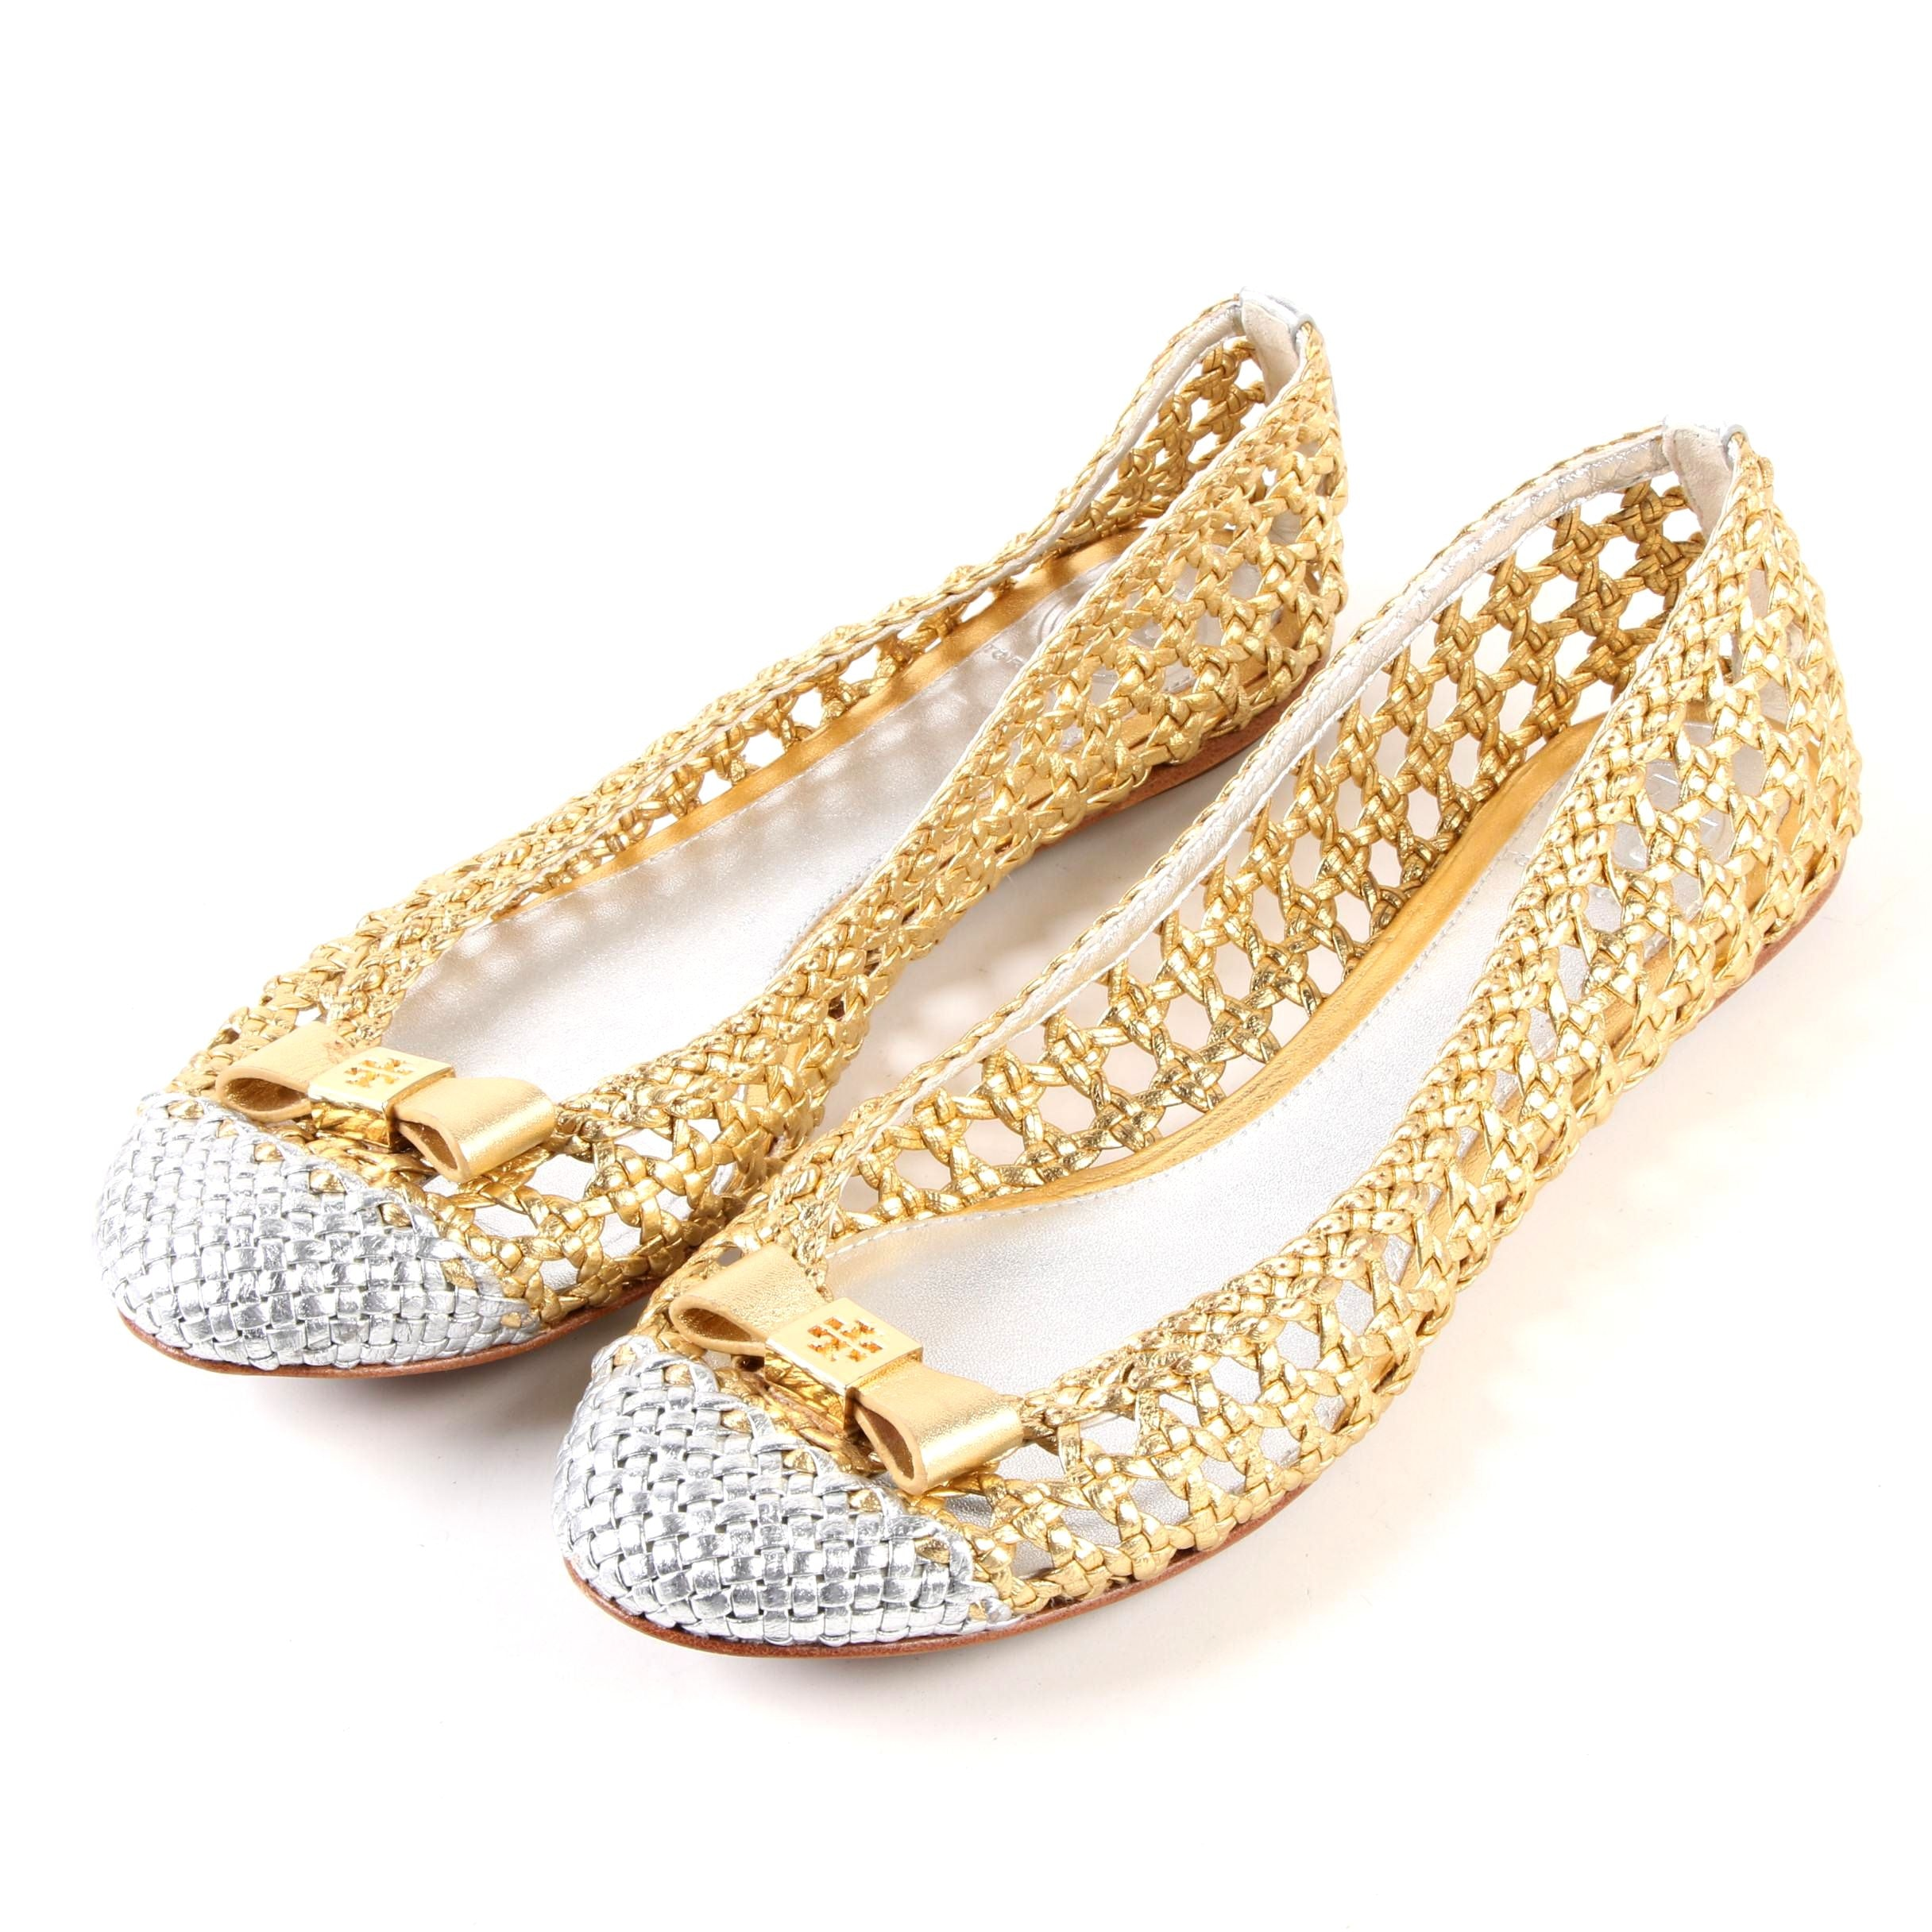 Tory Burch Carlyle Bow Top Flats in Open Weave Metallic Gold and Silver Leather